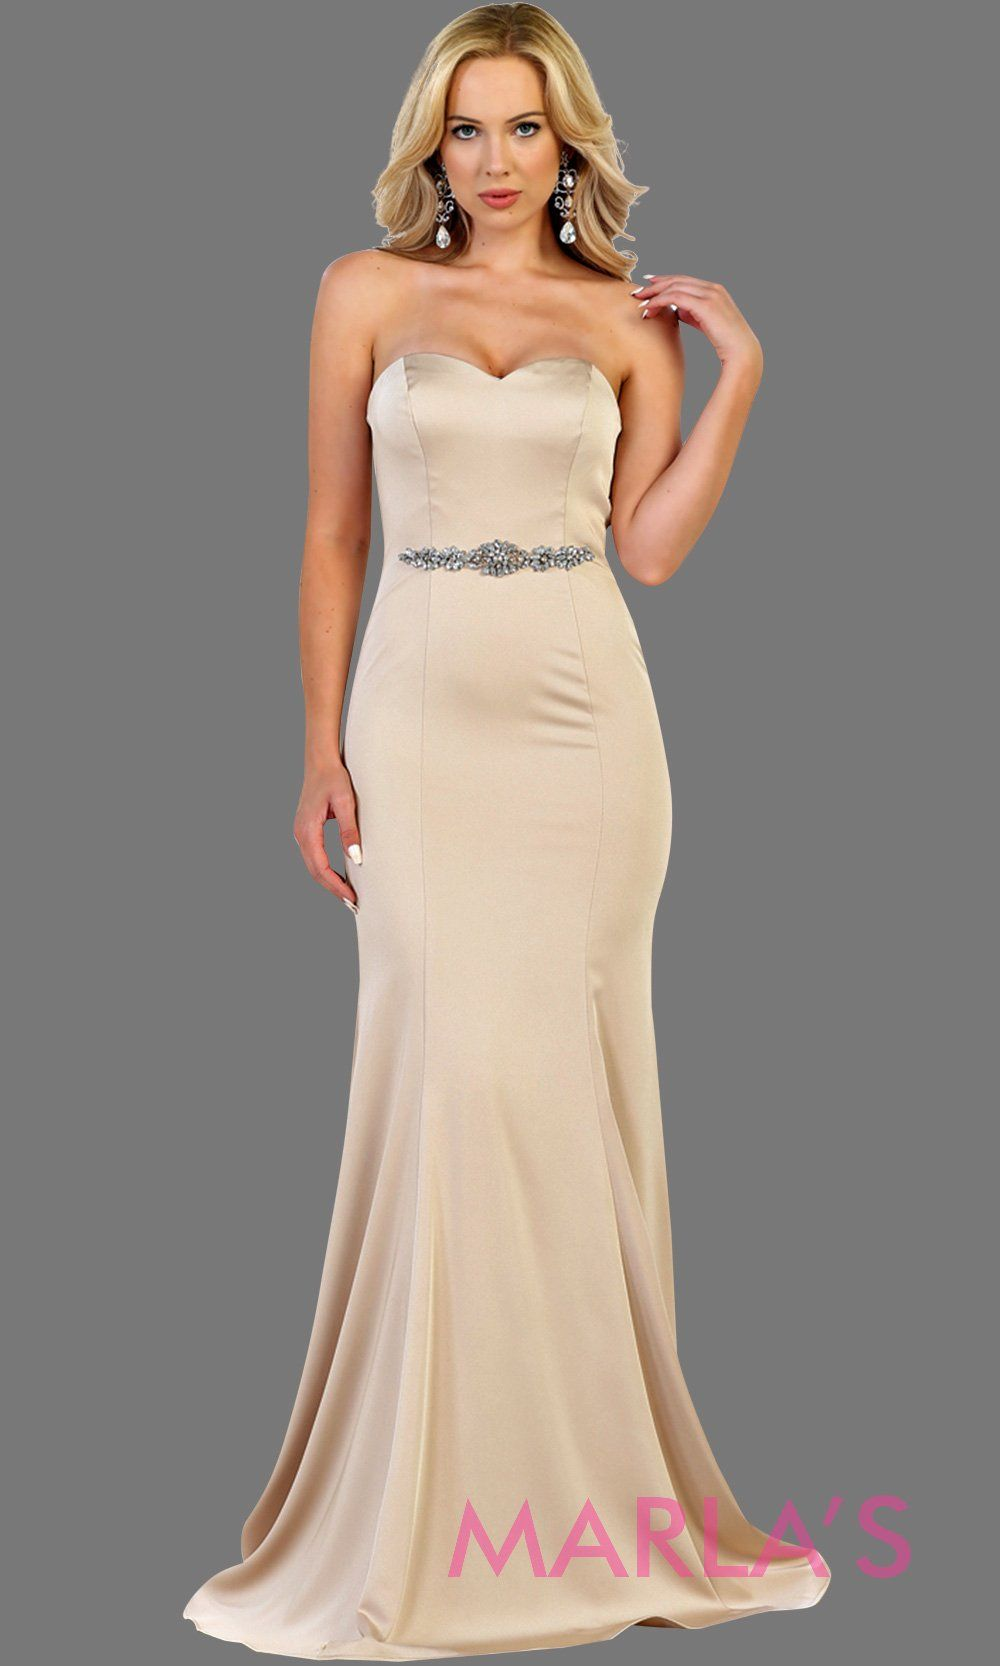 Long champagne strapless fitted dress with rhinestone belt. Perfect taupe dress for prom, gala, bridesmaids,  formal party, wedding guest dresses, sleek and sexy party dress. Available in plus sizes.